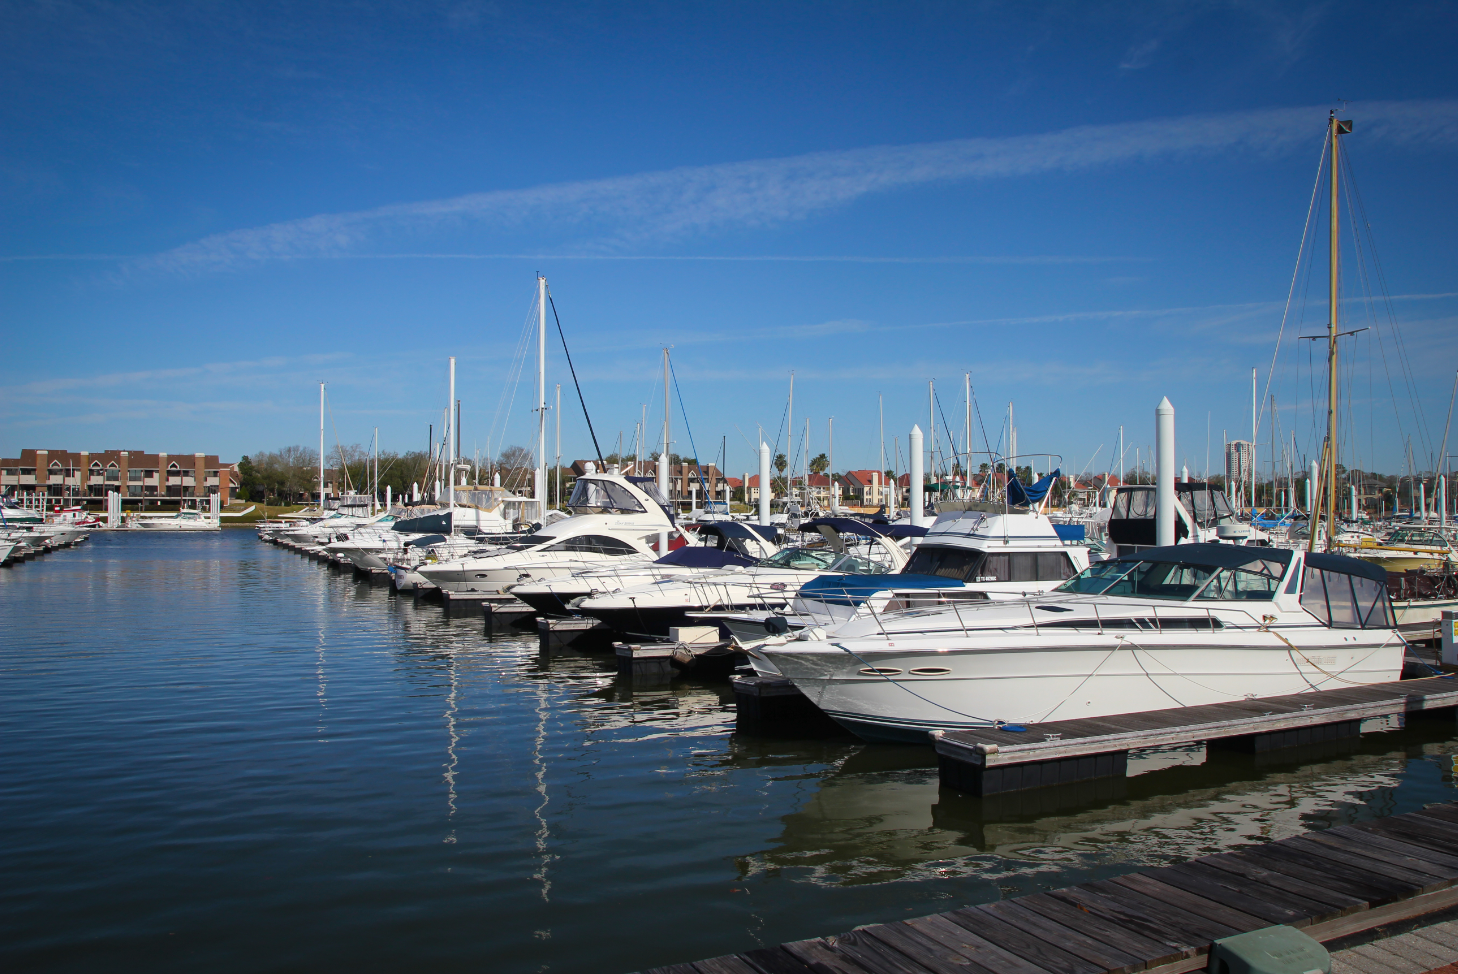 Boats in the Marina